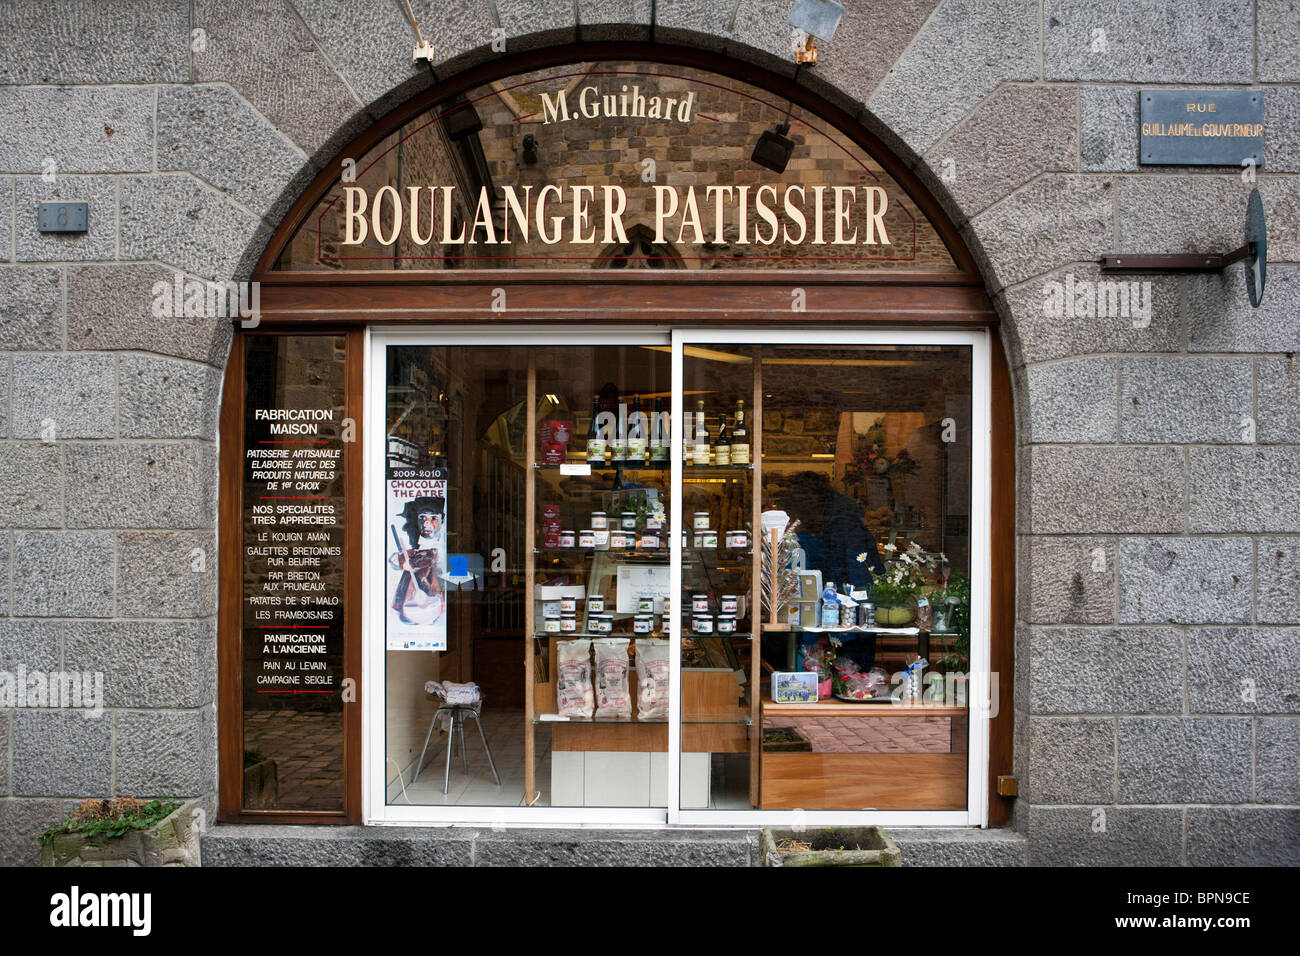 Boulangerie Patisserie, St Malo, Brittany, France - Stock Image